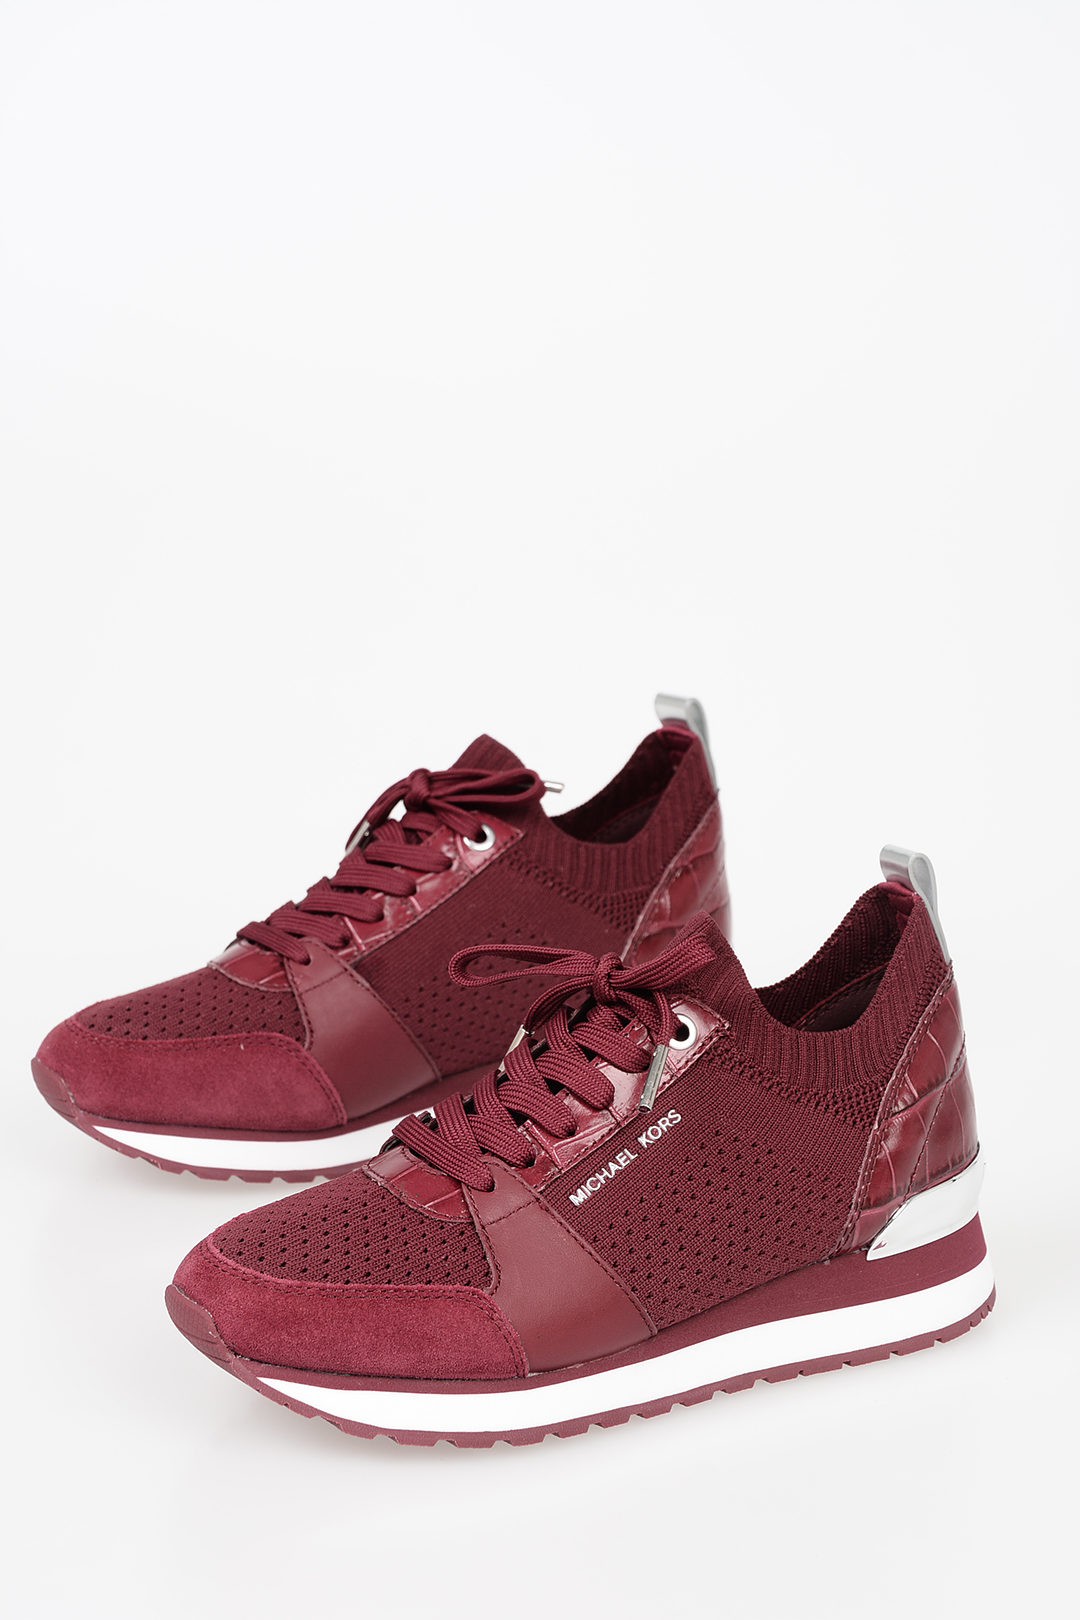 sneakers michael kors outlet